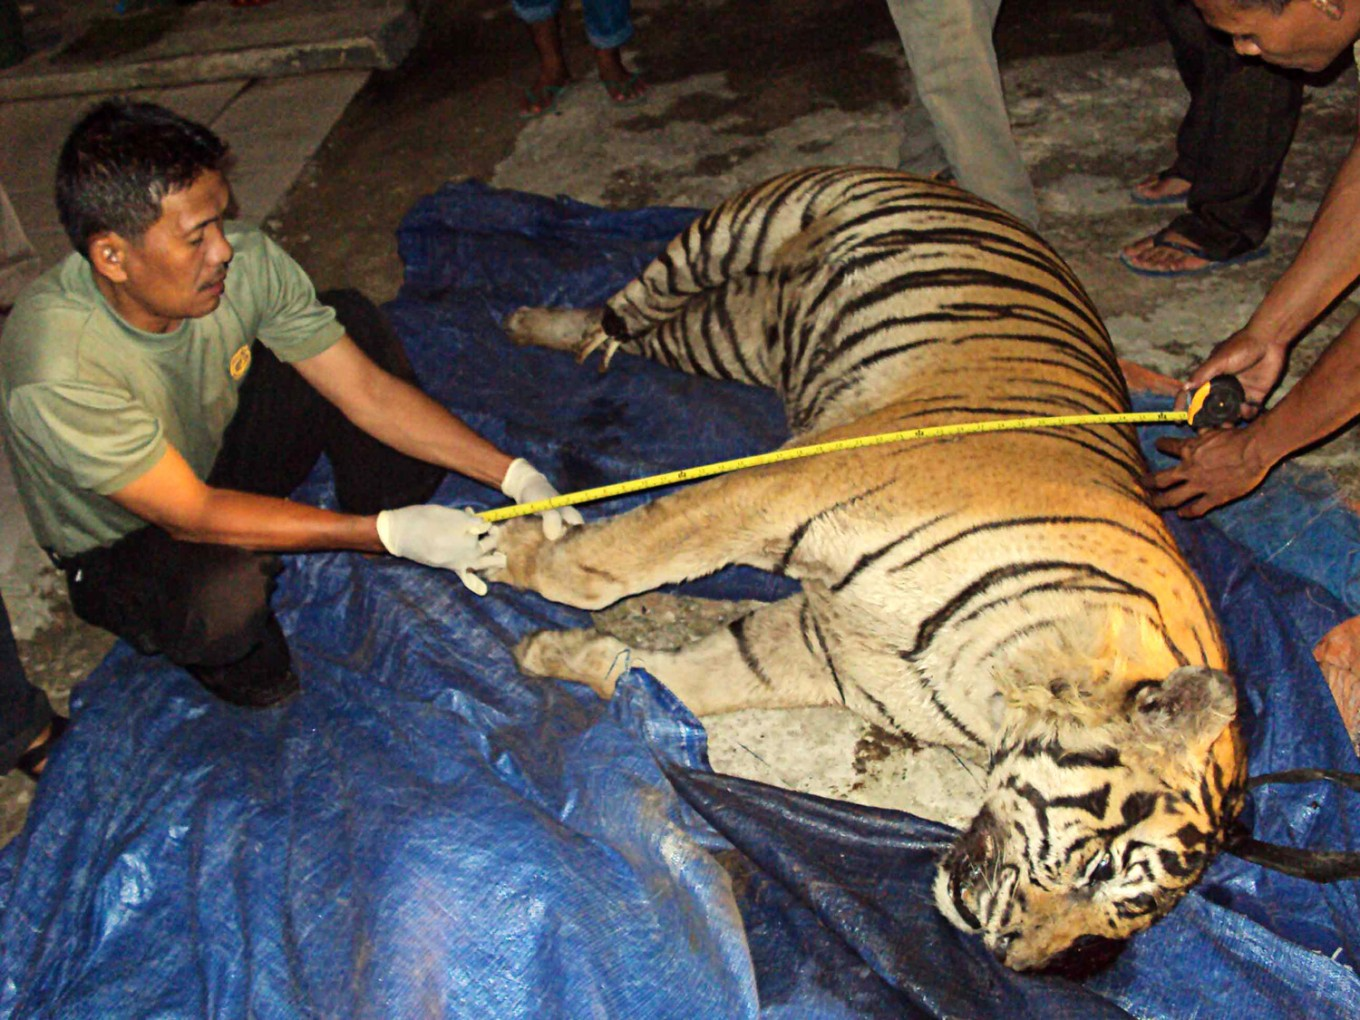 Tiger-skin traders sentenced to 4 years in prison